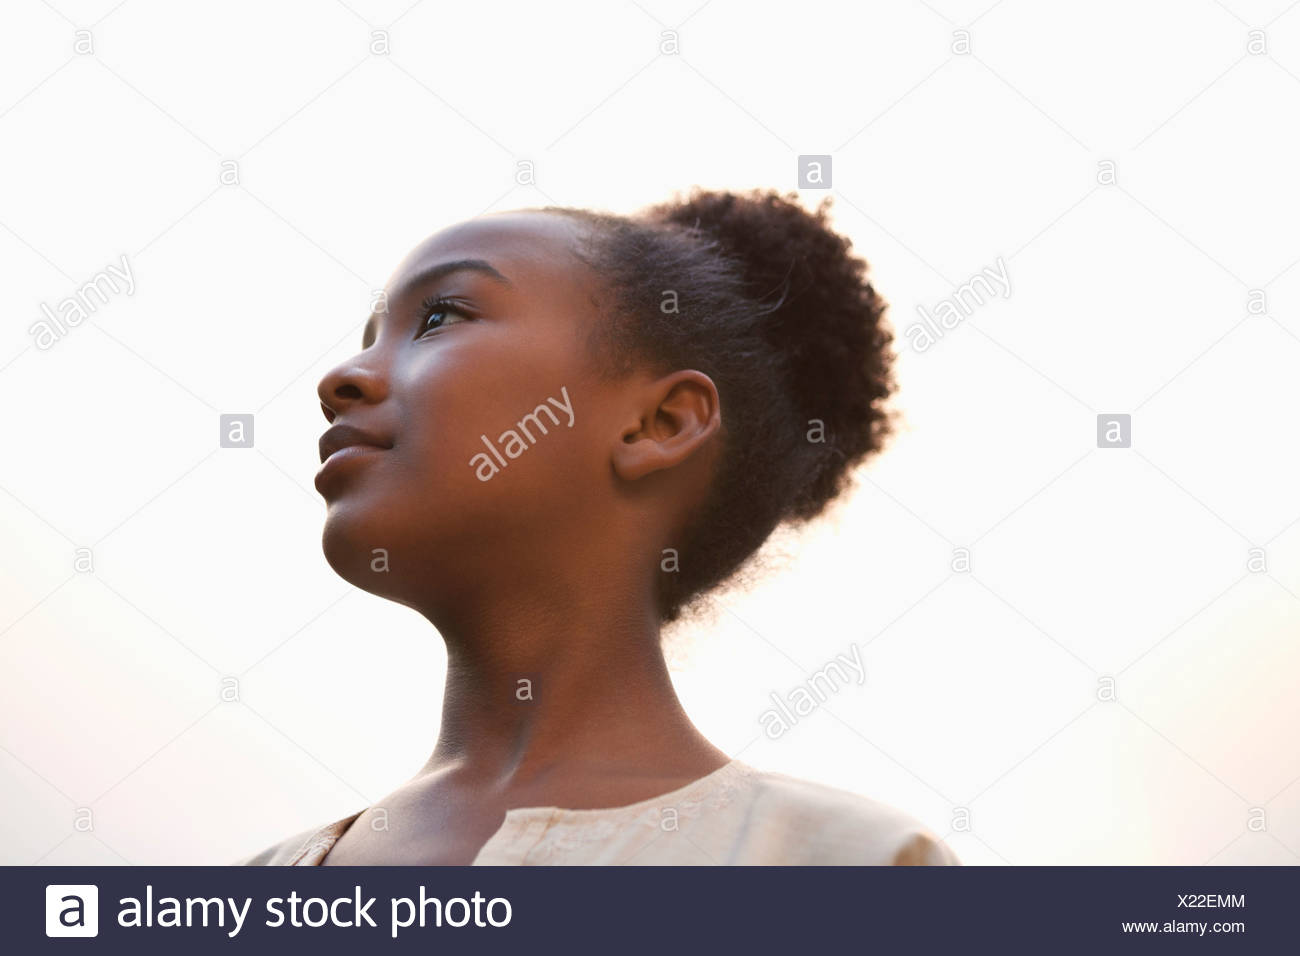 low angle profile of woman s face stock photo 276650660 alamy